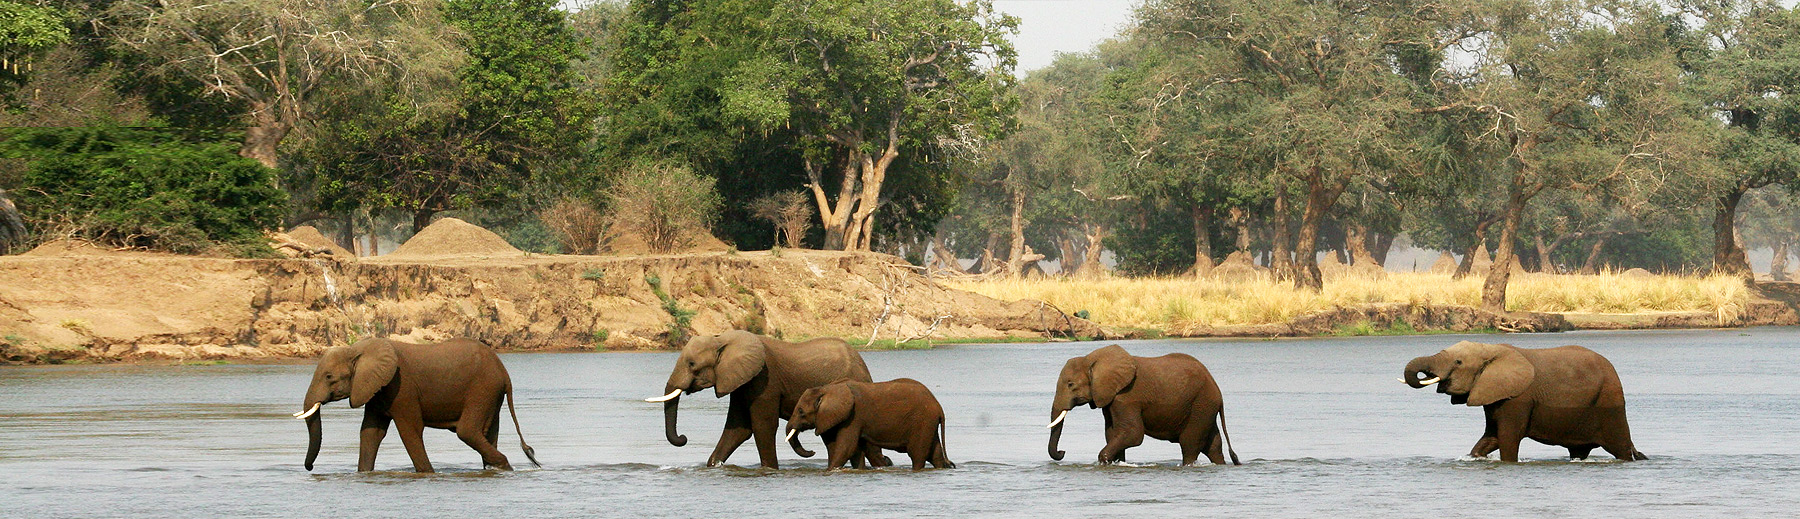 Five elephants walking in the river with a sand bank and trees in the background.